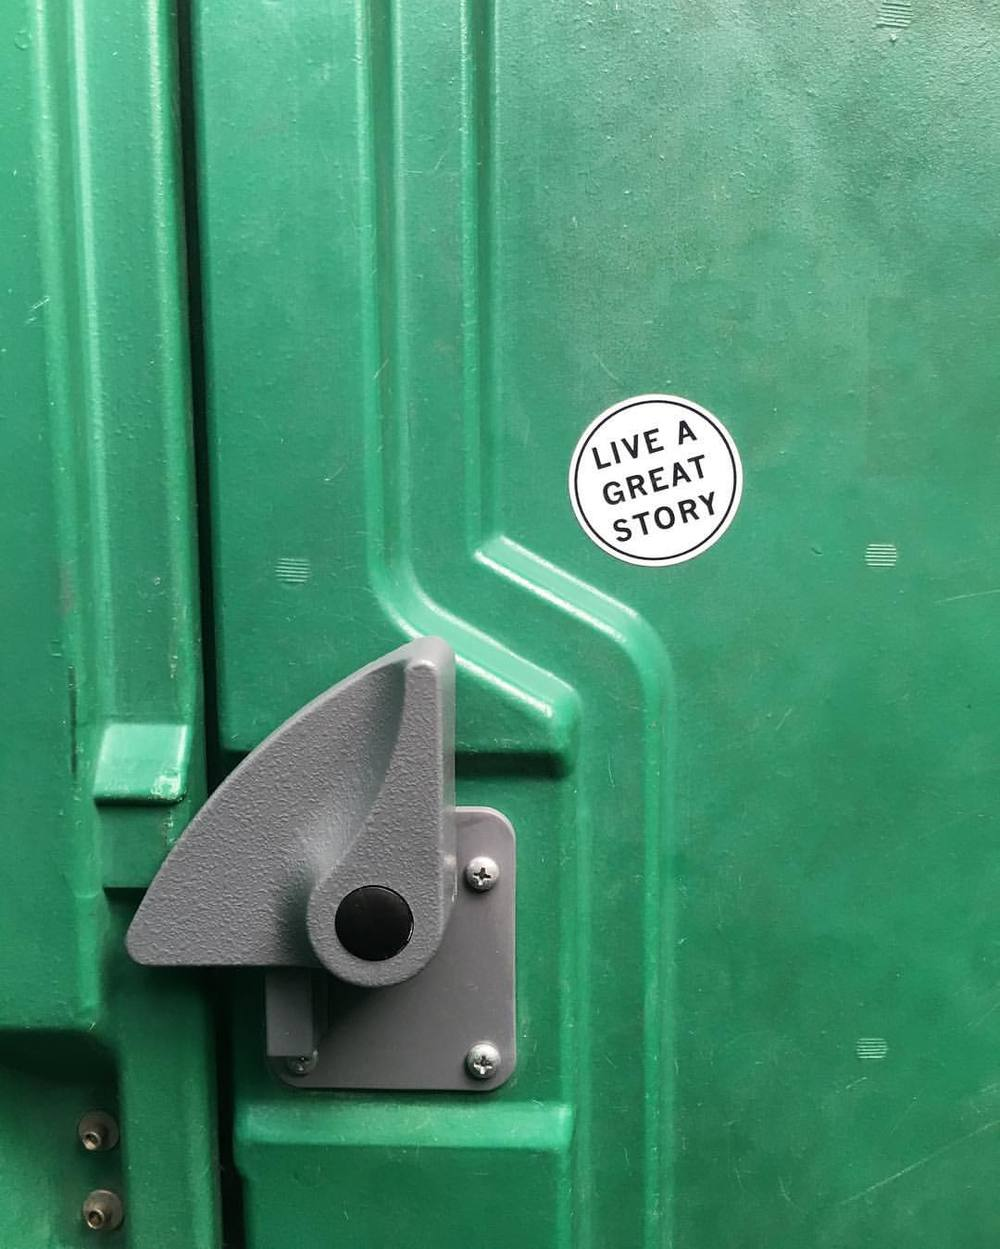 every-once-in-a-blue-moon-you-find-totally-legit-lifeadvice-in-a-portapotty-102366-also-can-anyone-explain-to-me-why-how-these-idiots-sit-inside-porta-potties-to-literally-carve-their-crappy-ass-graffiti-into-the-plastic-i-seriously-dont_26790425.jpg